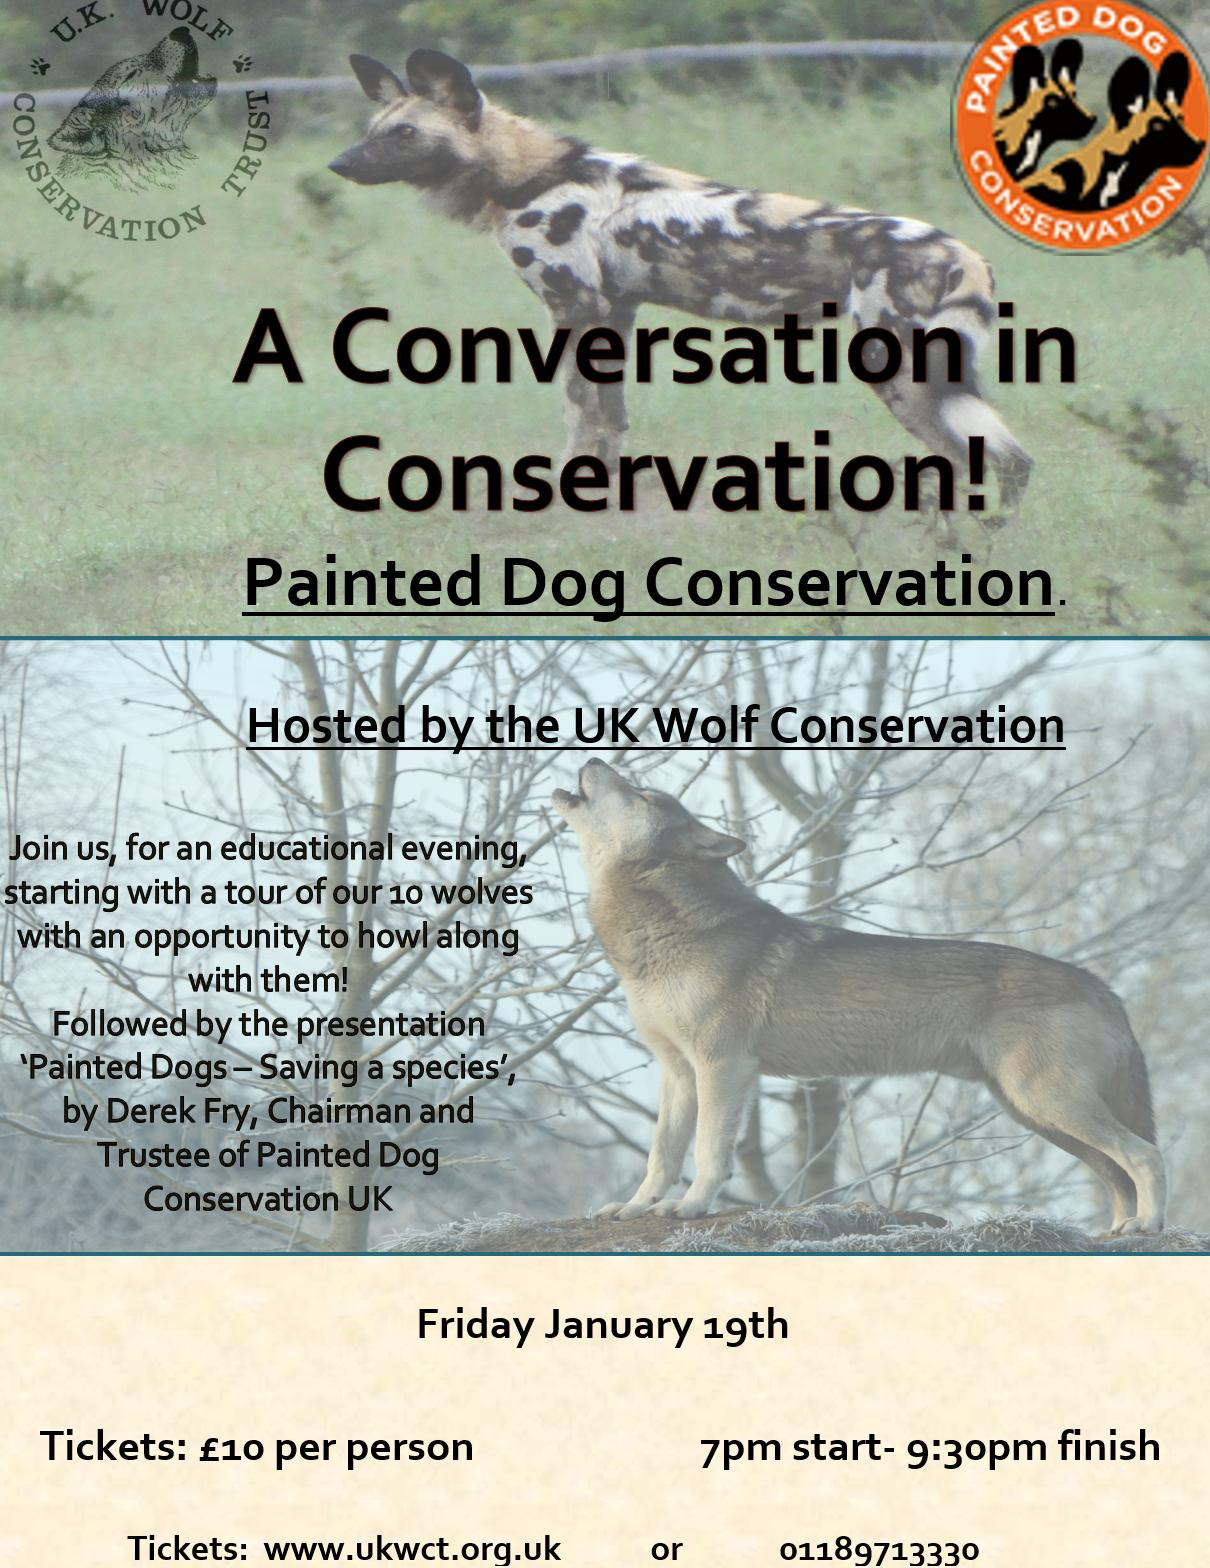 A Conversation in Conservation